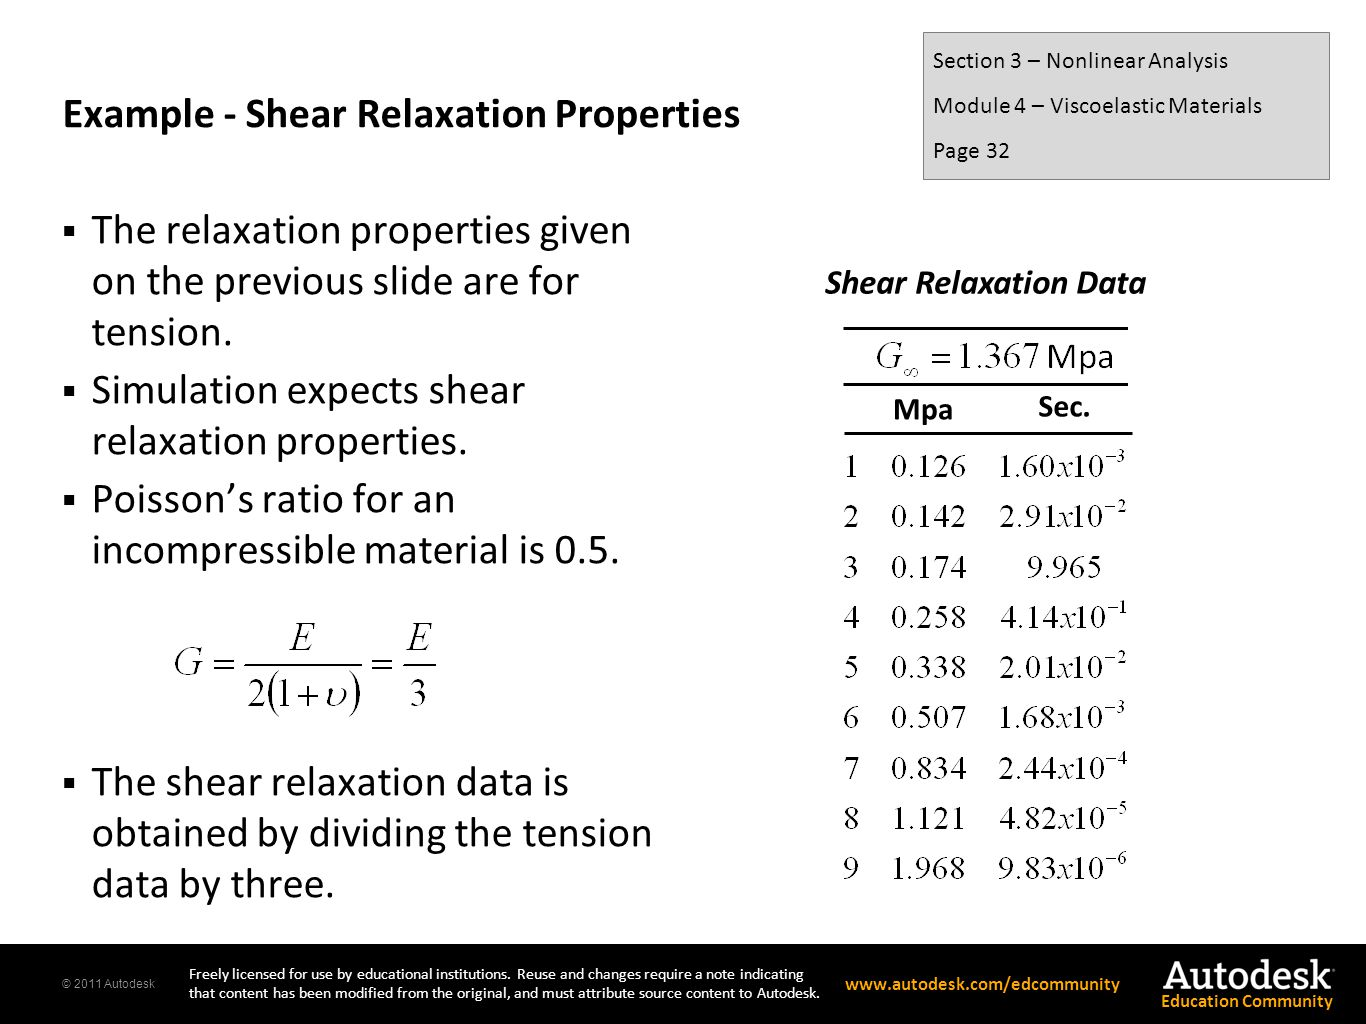 Example - Shear Relaxation Properties